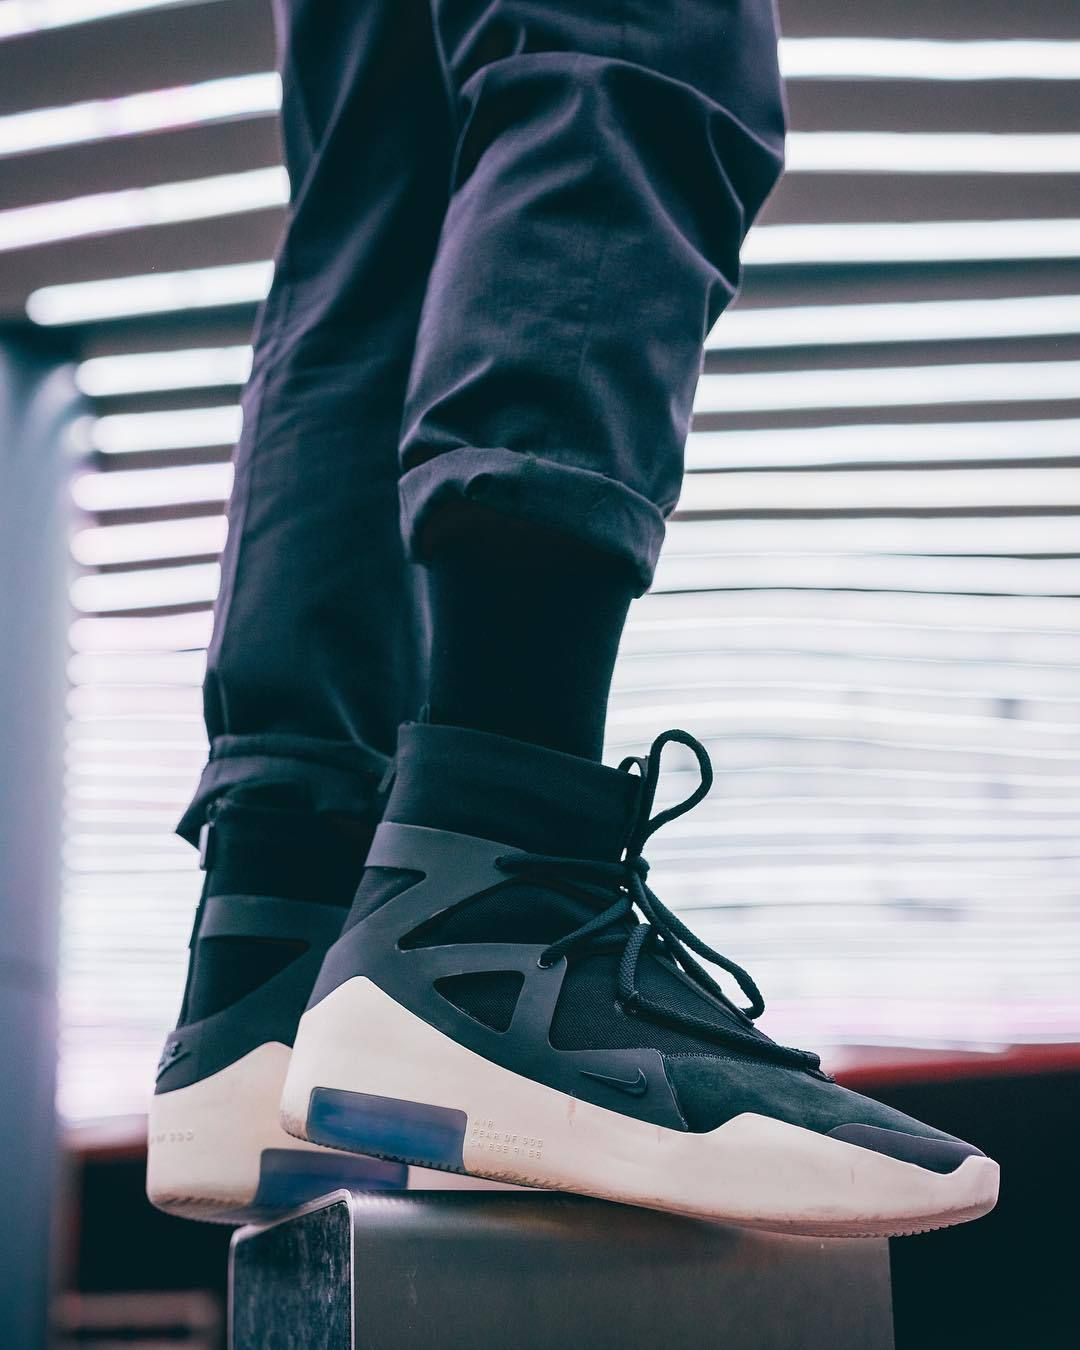 Nike Fear of God | Hype shoes, Sneakers